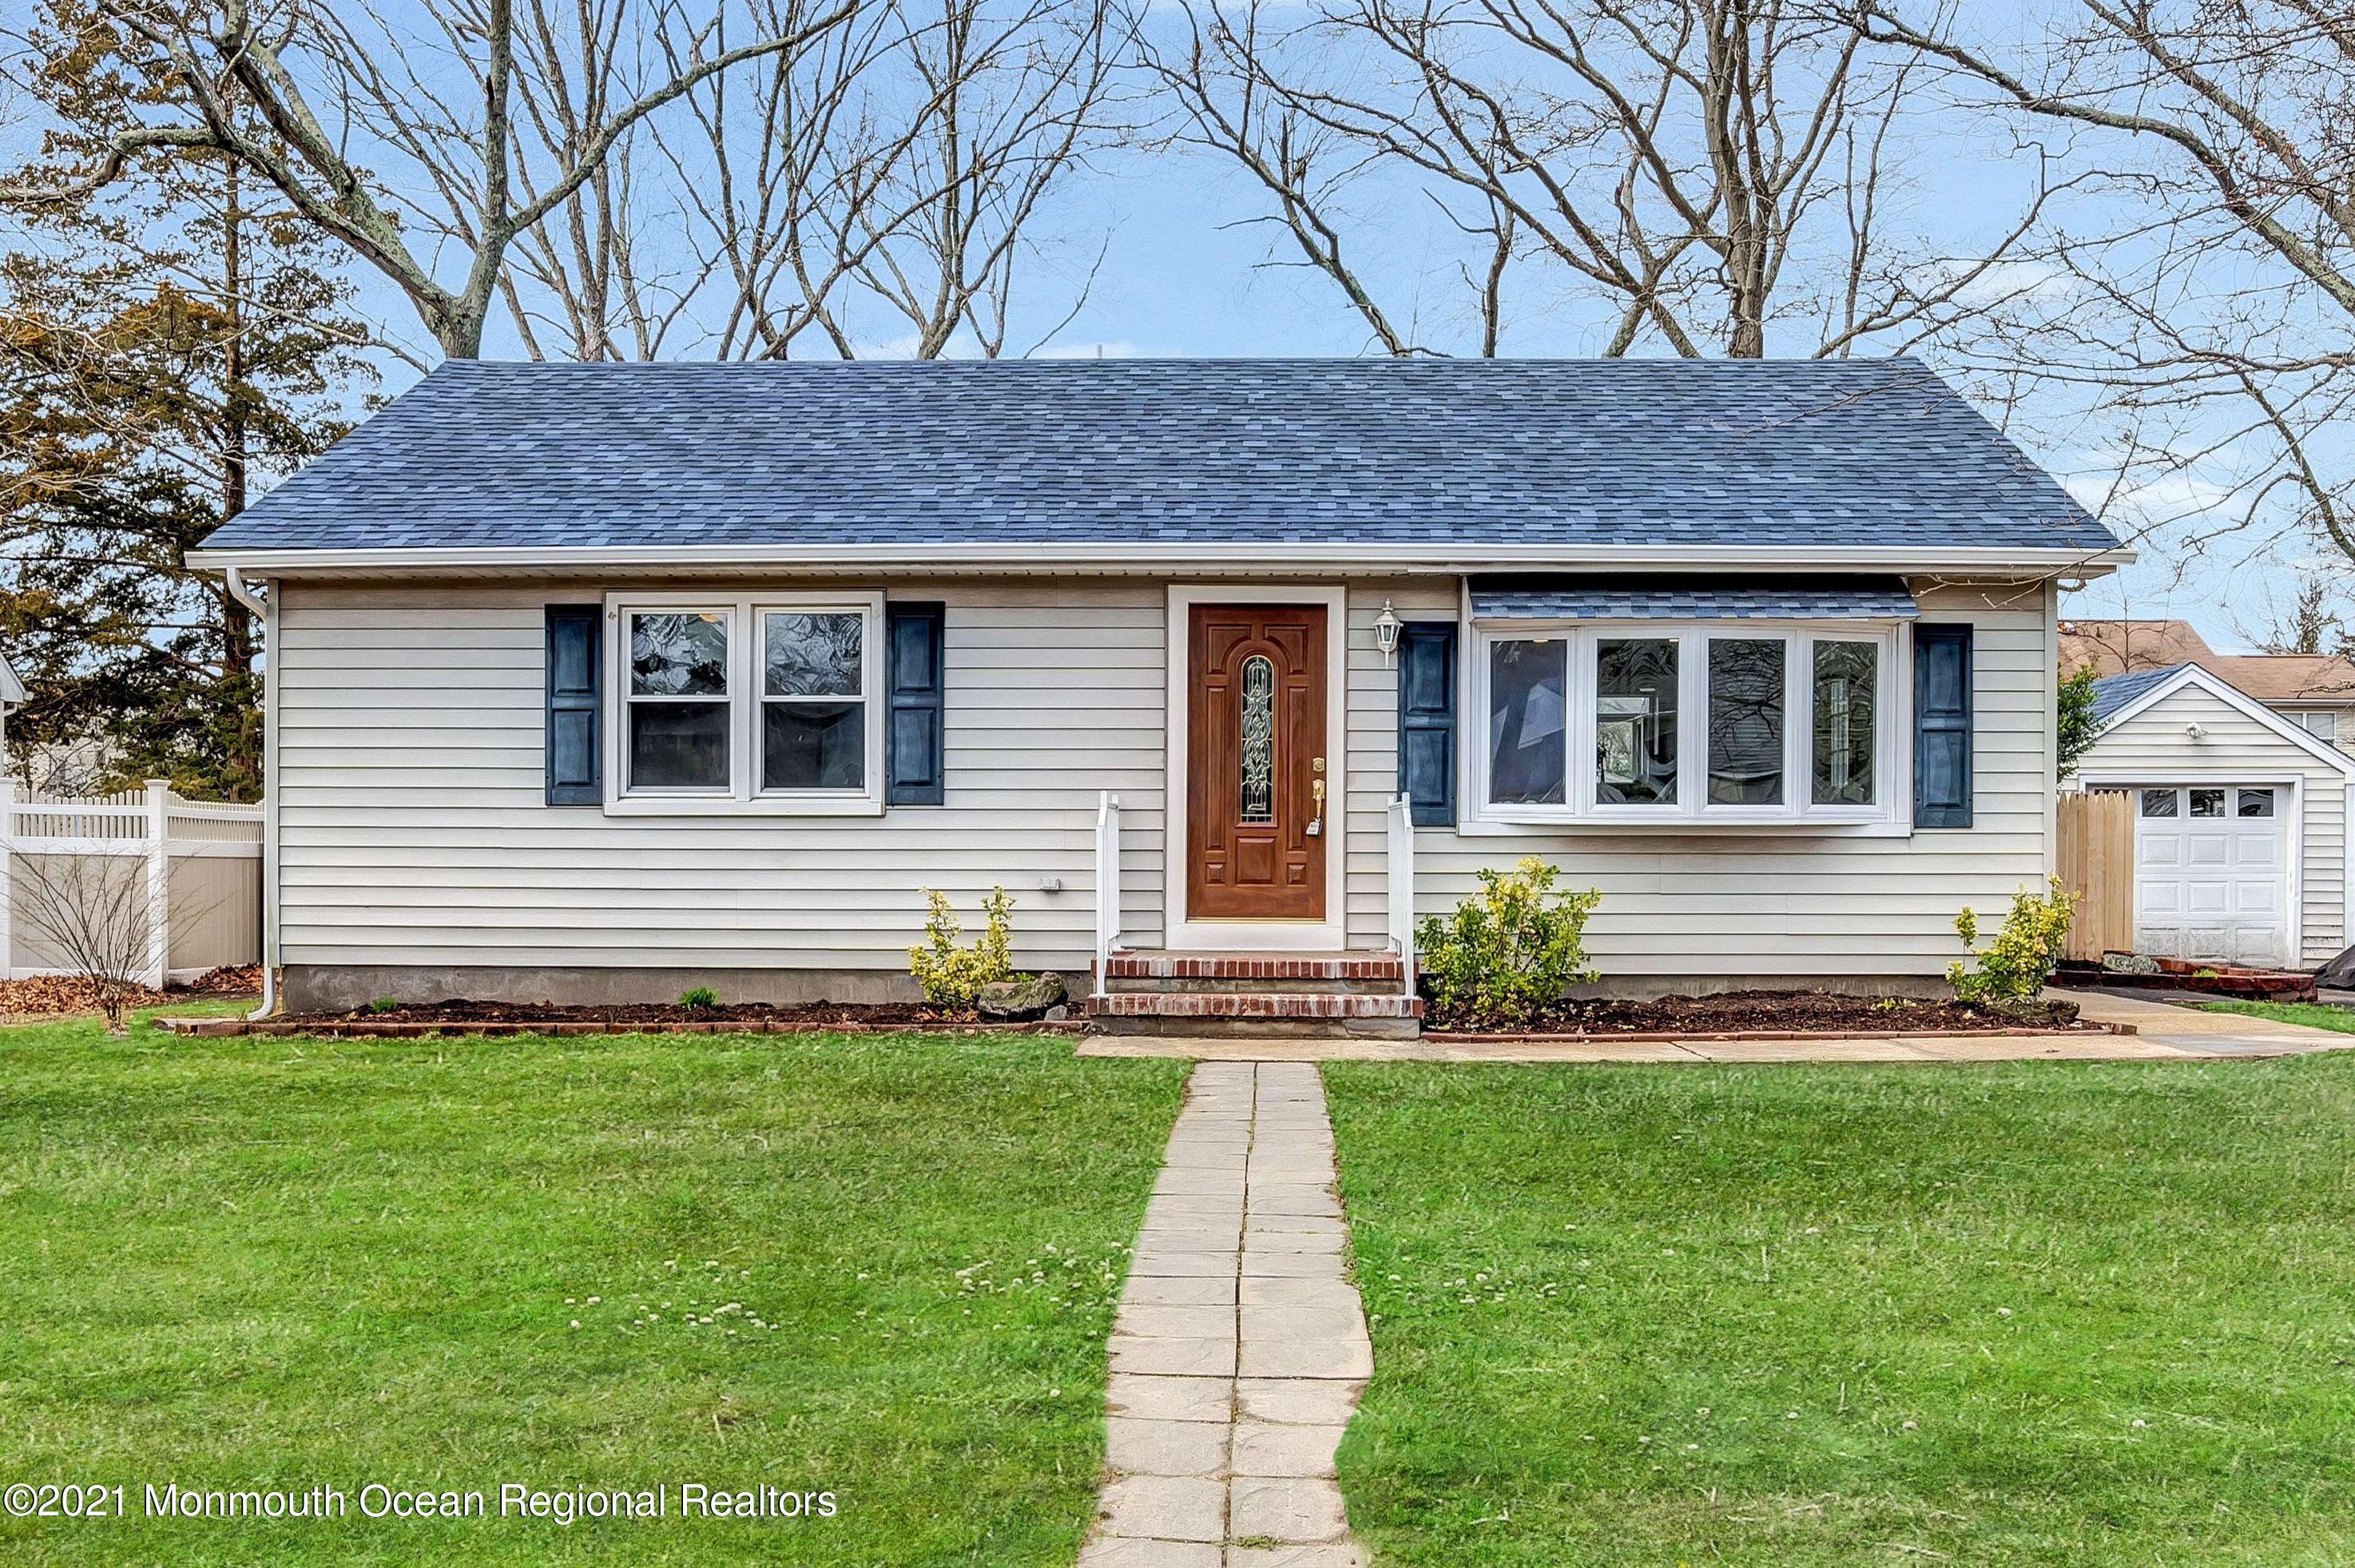 908 Briar Avenue, Toms River, New Jersey 08753, 3 Bedrooms Bedrooms, ,1 BathroomBathrooms,Single Family,For Sale,908 Briar Avenue,1,22110100